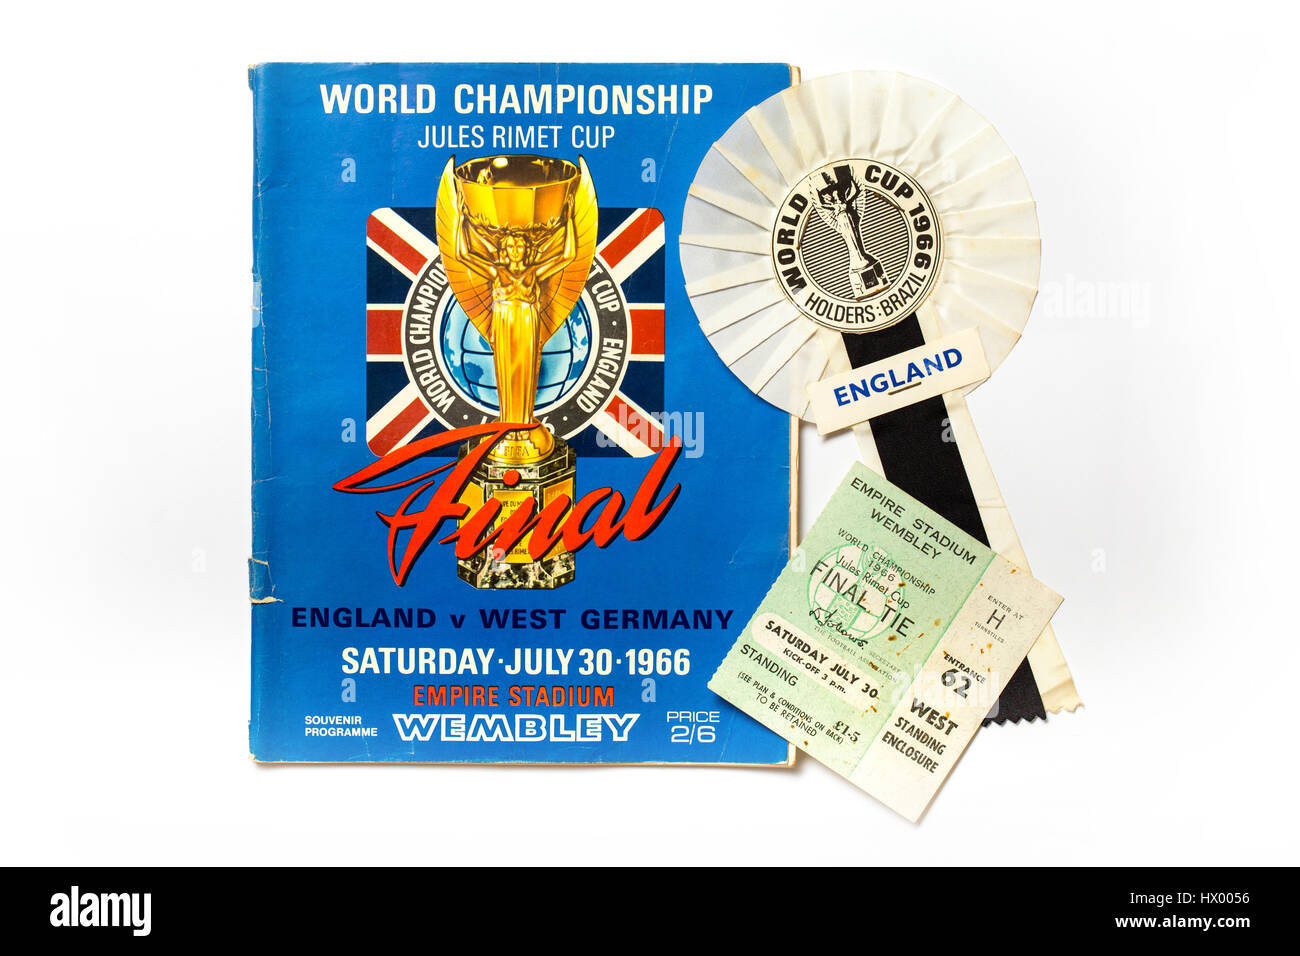 1966 World Cup Final Football Program When England Beat West Germany 4-2 to win the World Cup - Stock Image